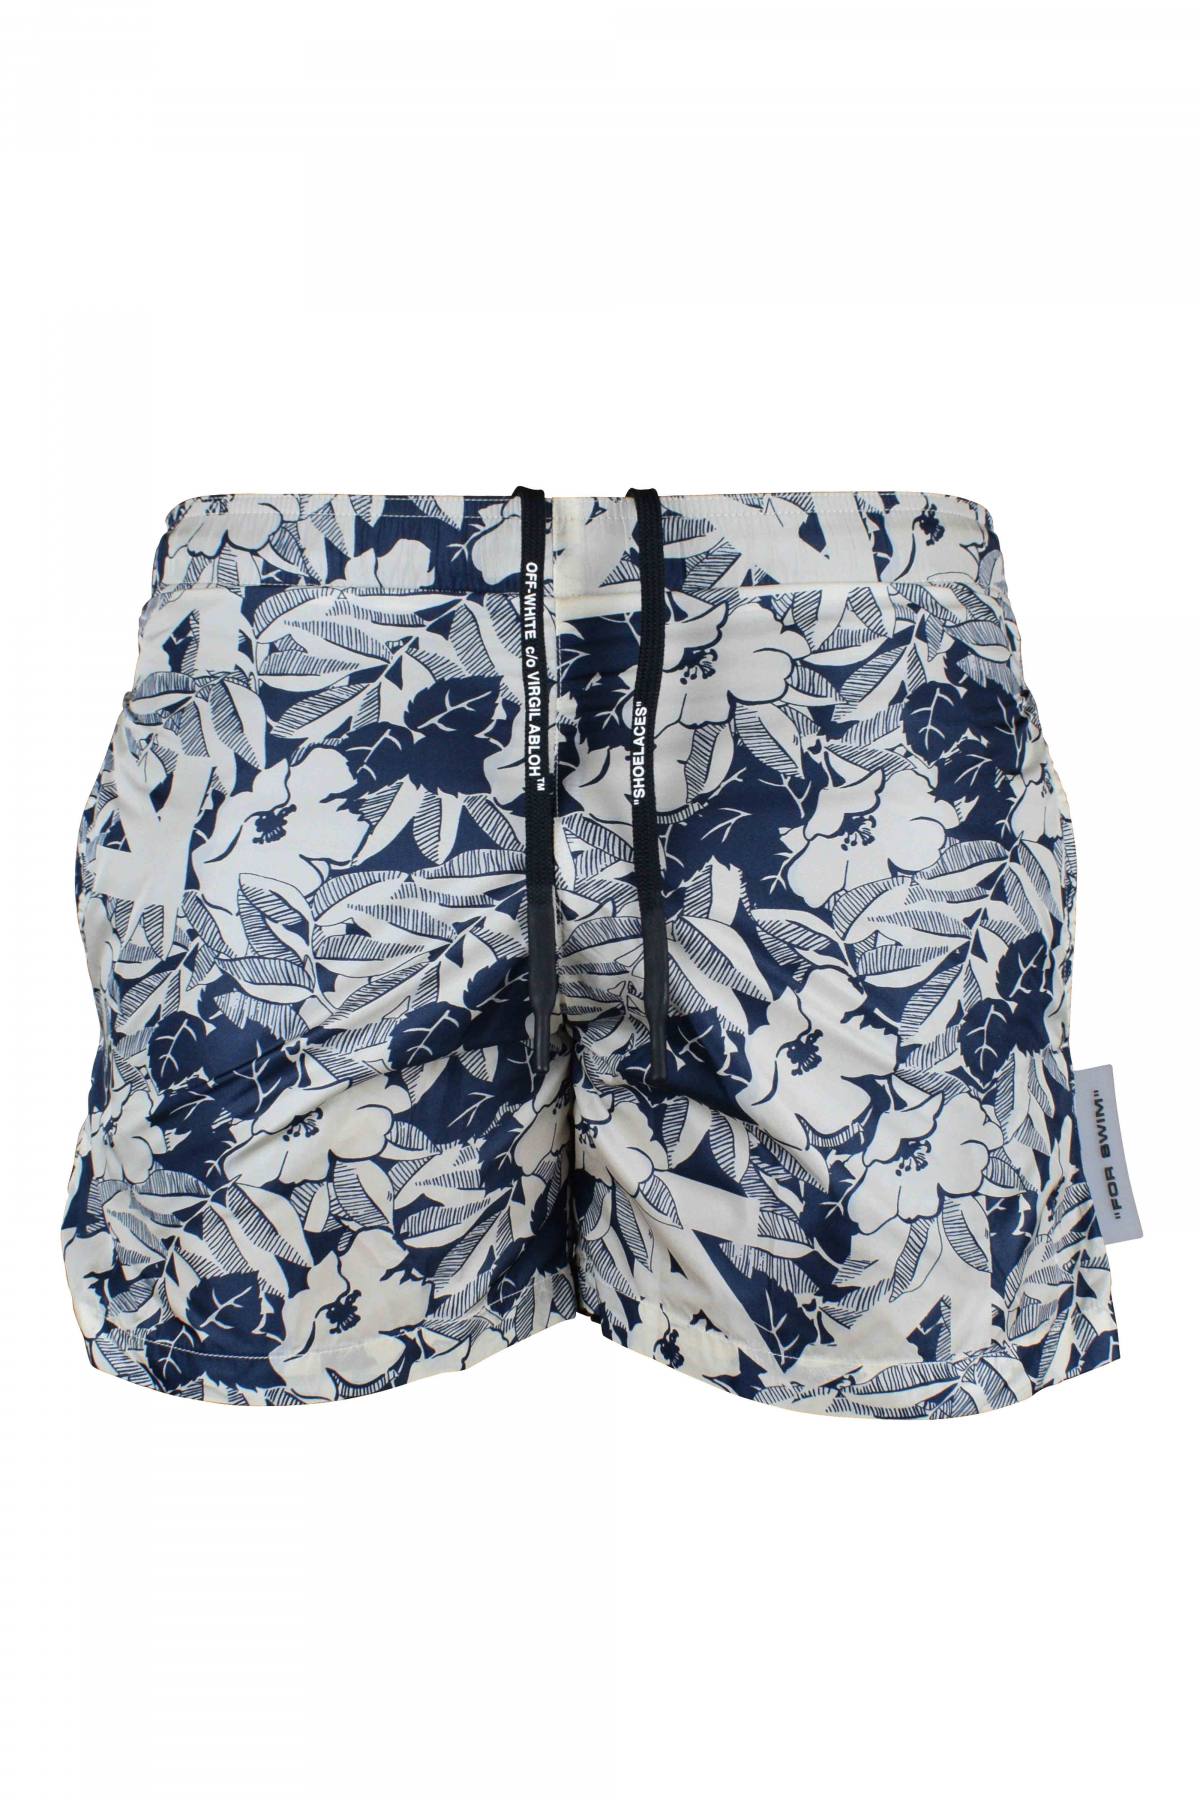 White Off-White swim shorts with blue floral pattern.